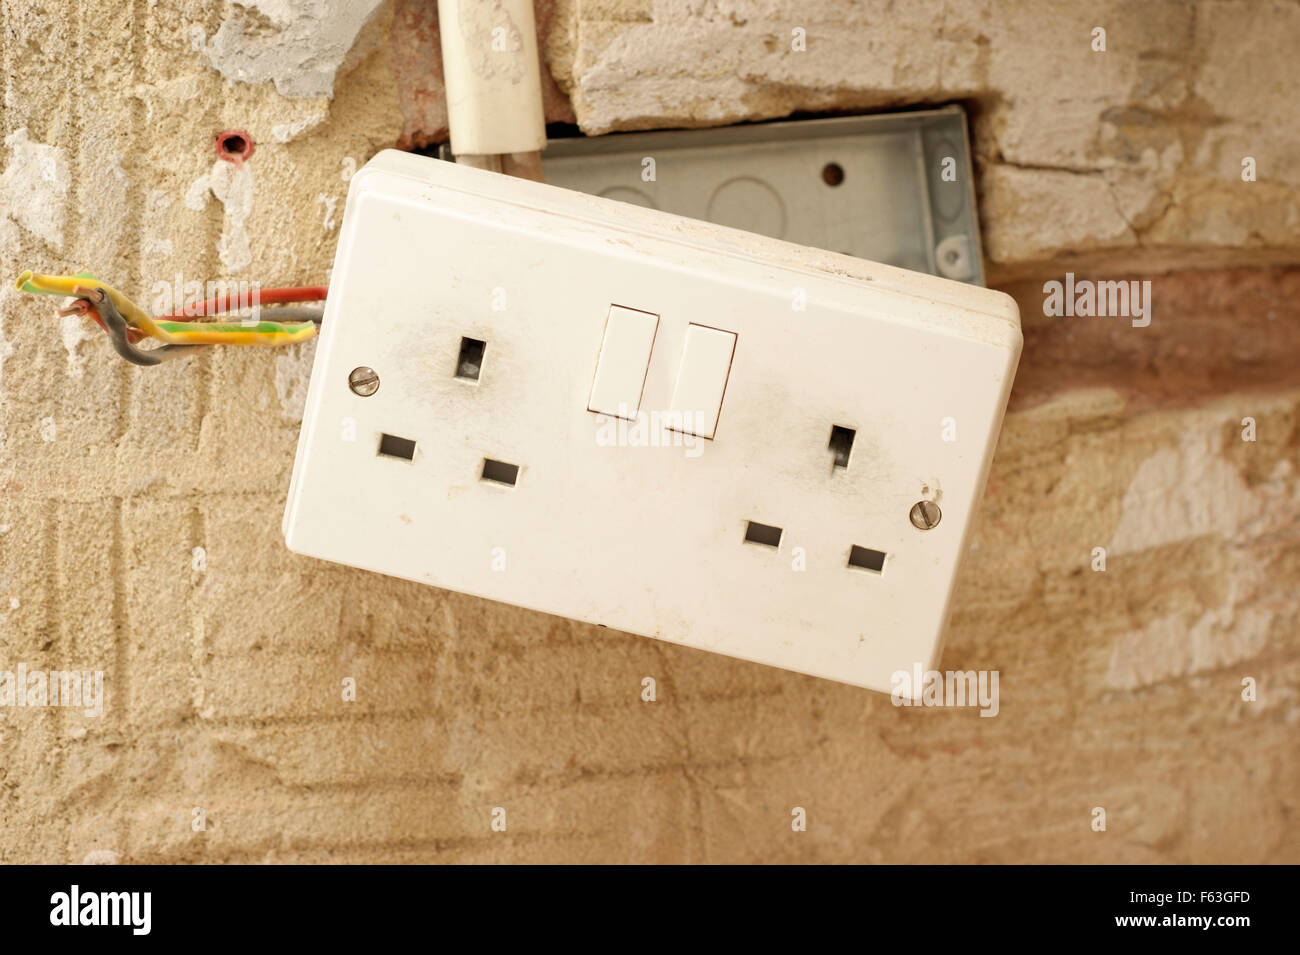 hight resolution of electric plug sockets with exposed wiring in a rented social housing property house that needs attending to